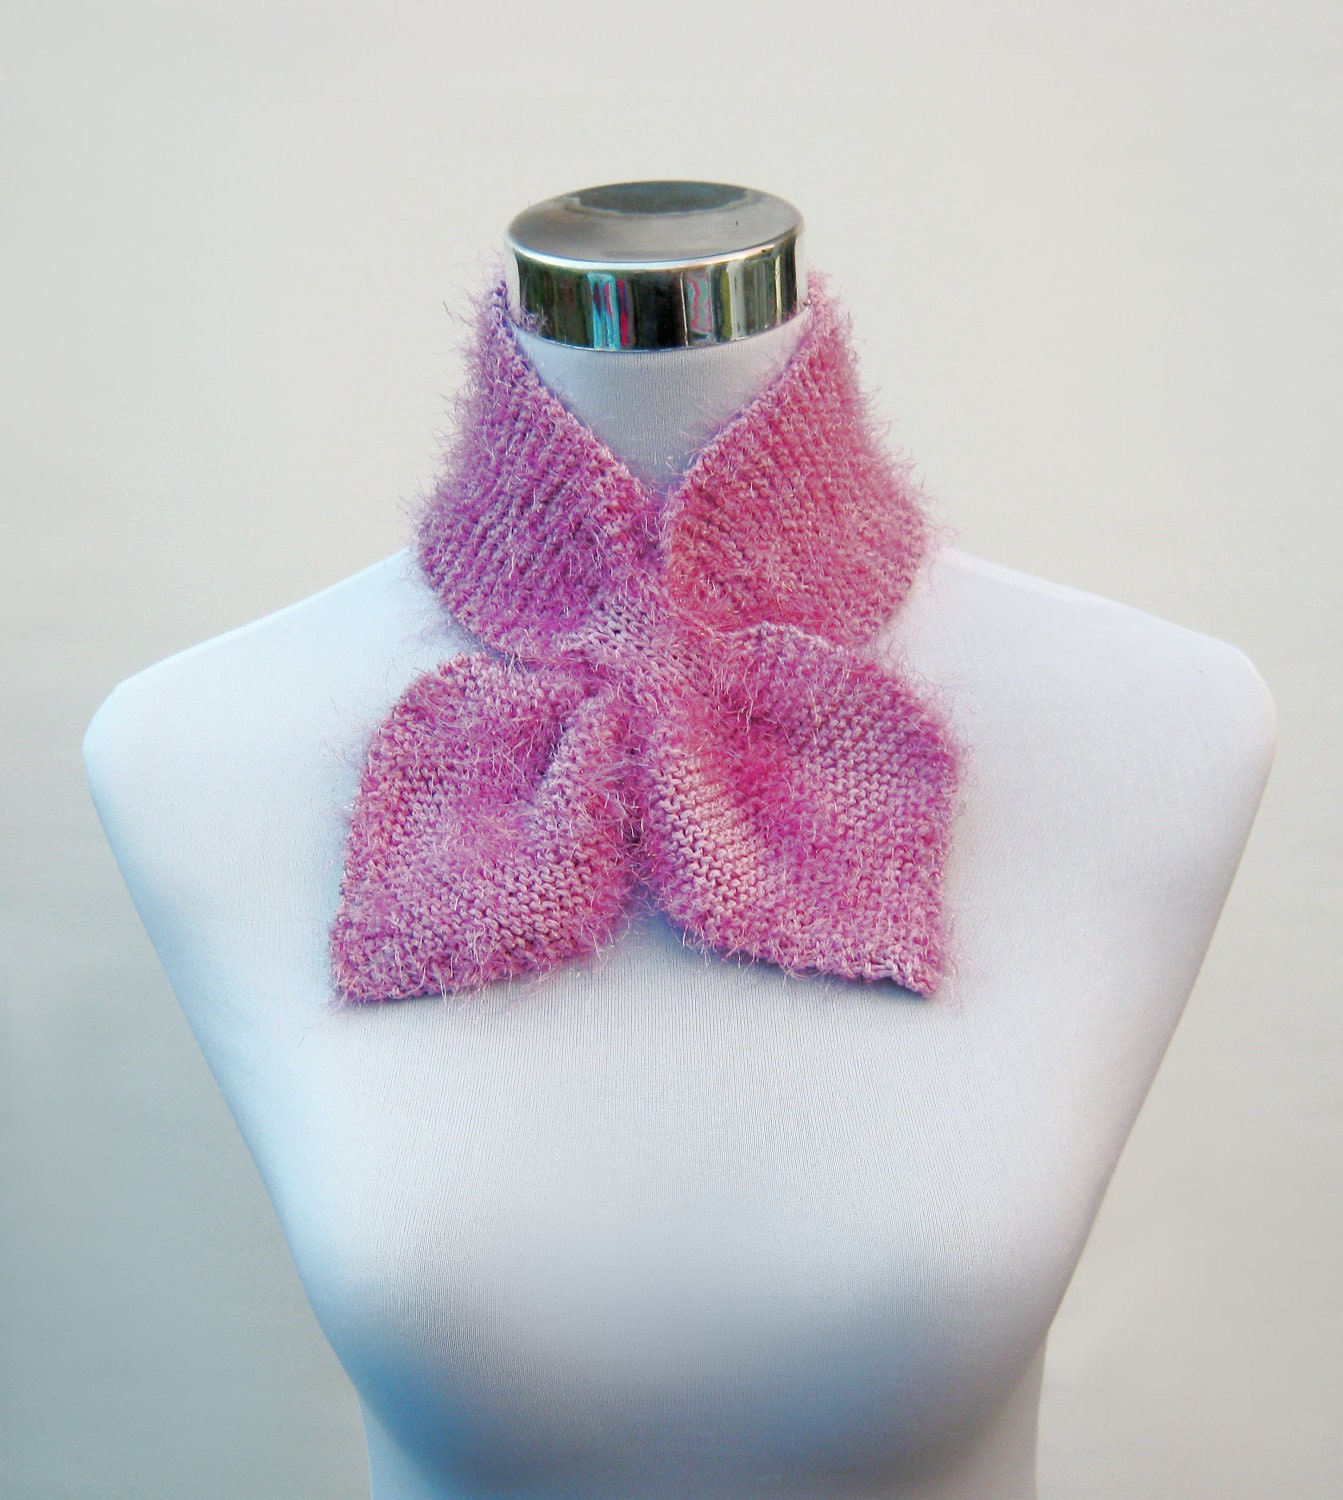 Lurex ascot scarf knit retro 50s style scarflette bow tie neck warmer in pink fluffy sparkly lurex